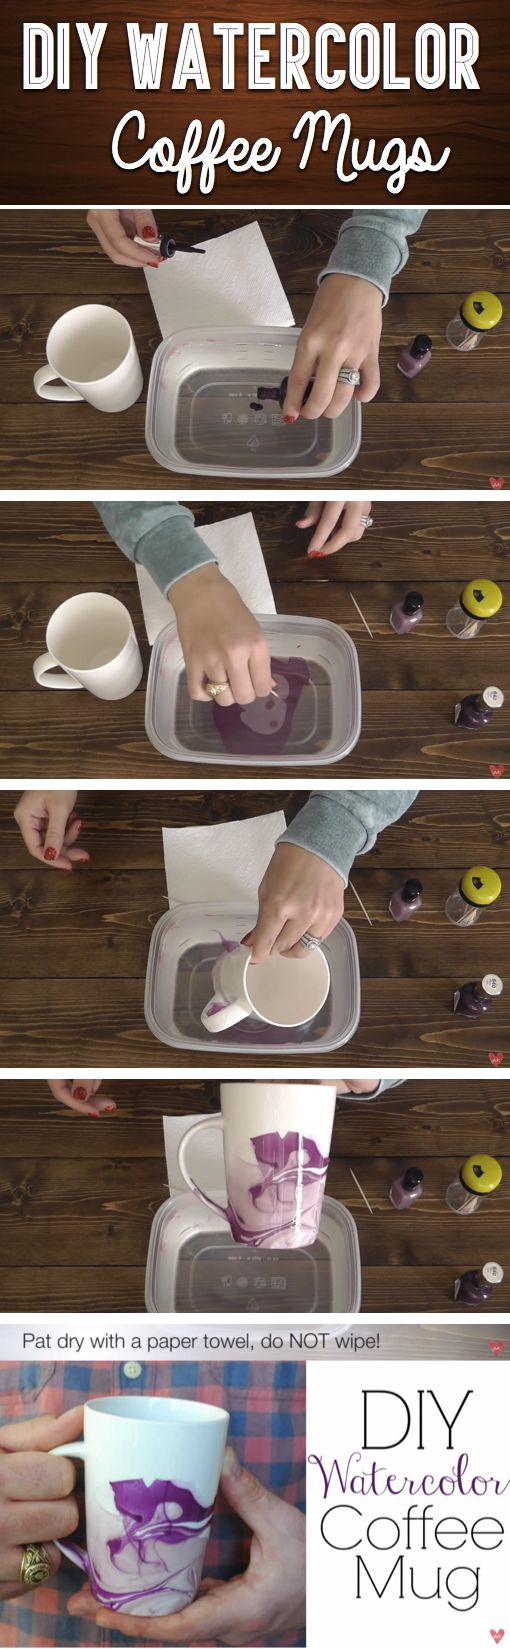 You Will Be Amazed To See What You Can Achieve With A Plain Coffee Cup And Some Nail Polish! - She Turned A Plain Mug, Nail Polish And A Toothpick Into Something Amazing! https://www.wsdear.com